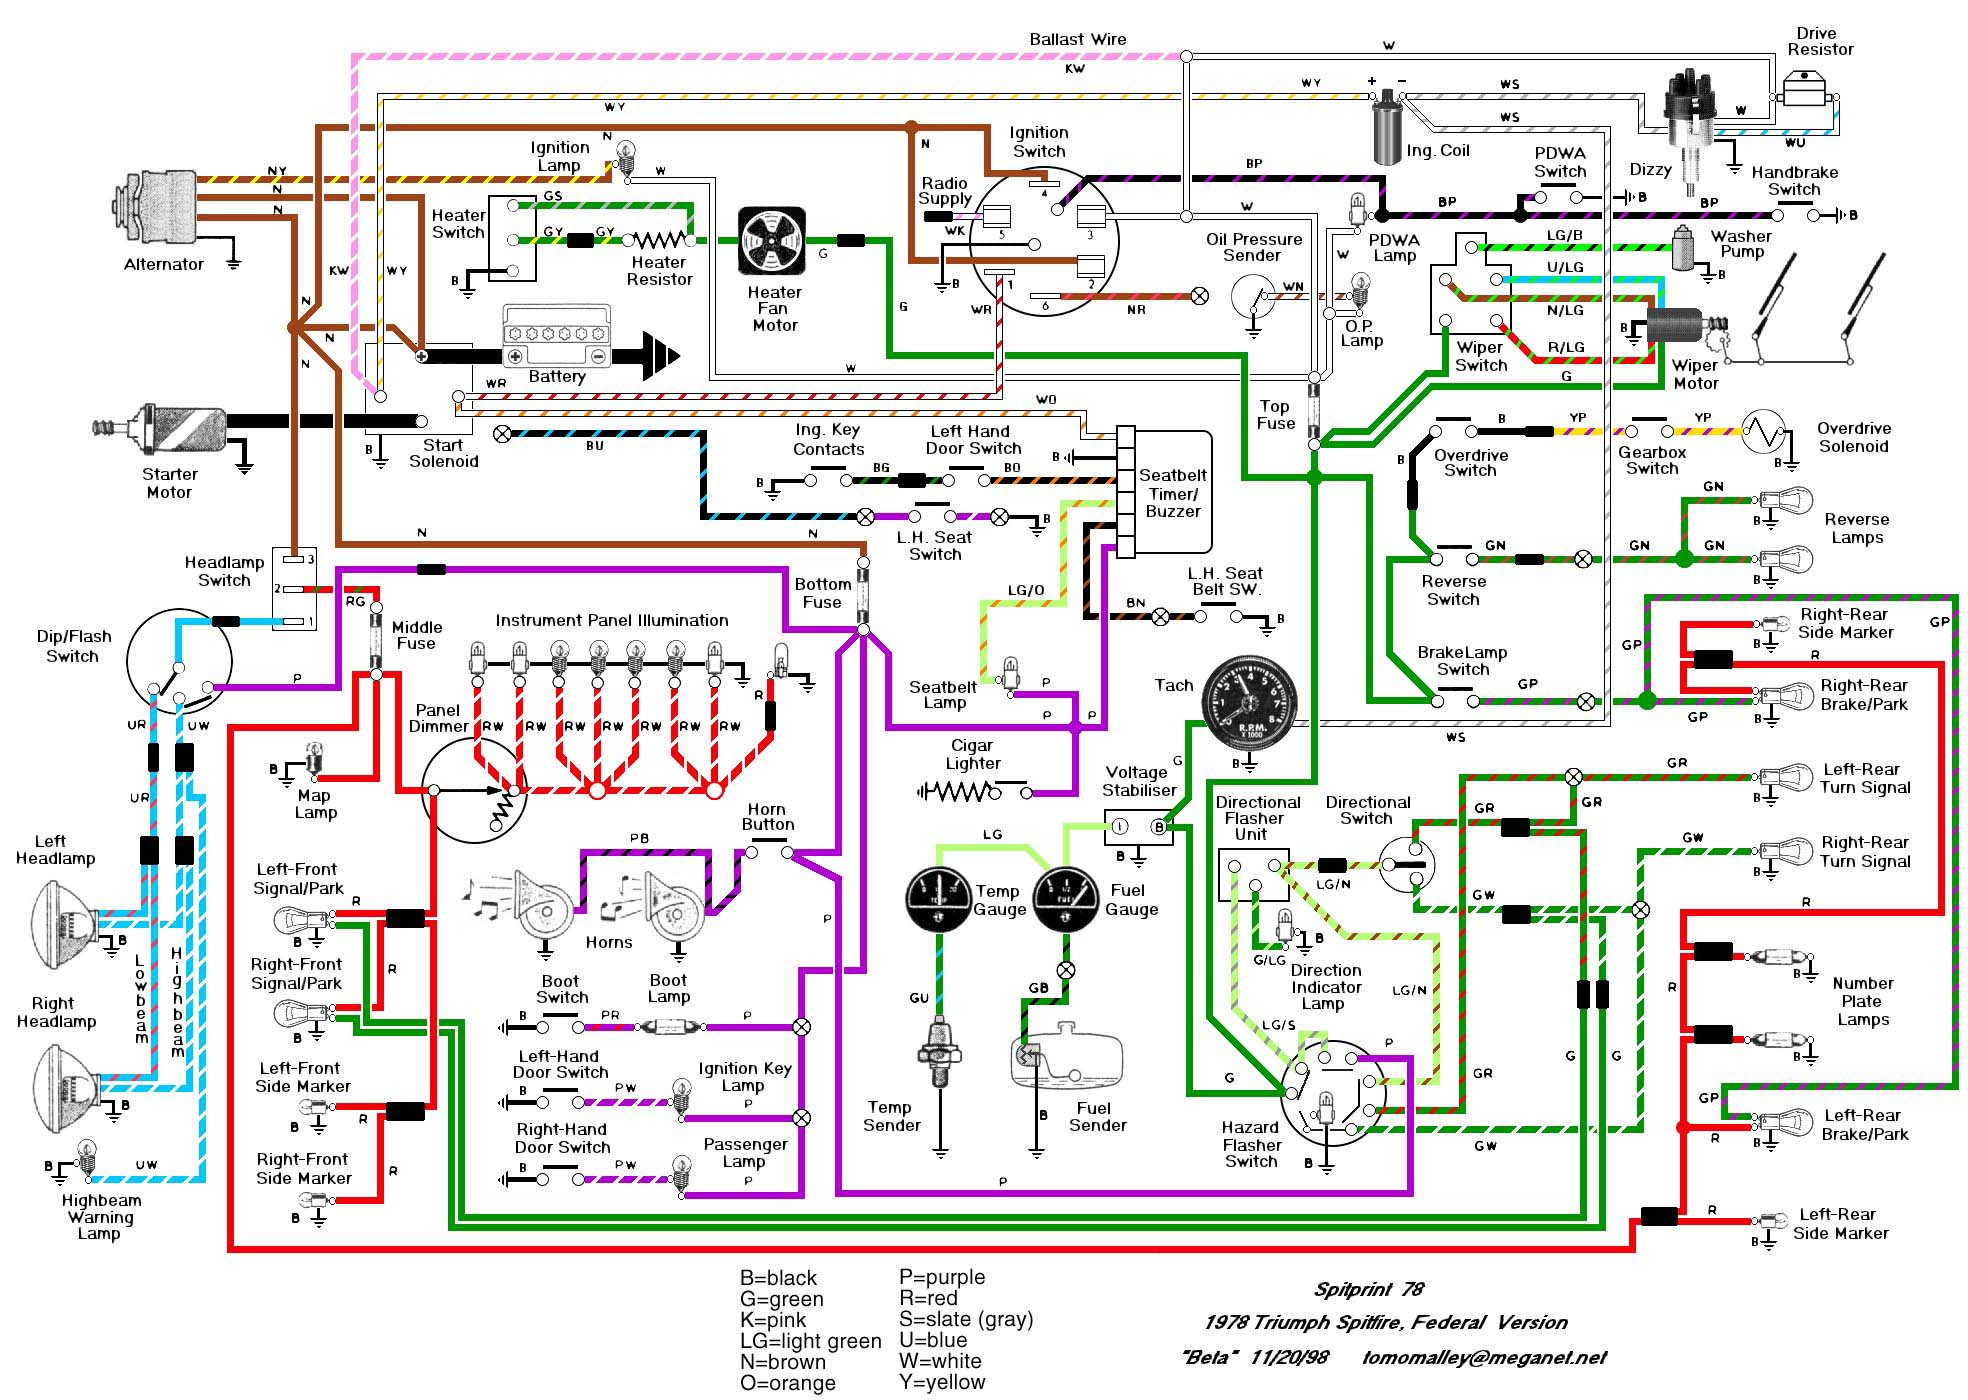 2001 toyota corolla wiring diagram with Wiring on Wiring likewise 93 Corolla Maf Sensor Location further 2002 Camry 2 4l Engine Mounts Diagram as well Toyota Avalon Alternator Location furthermore Forum posts.